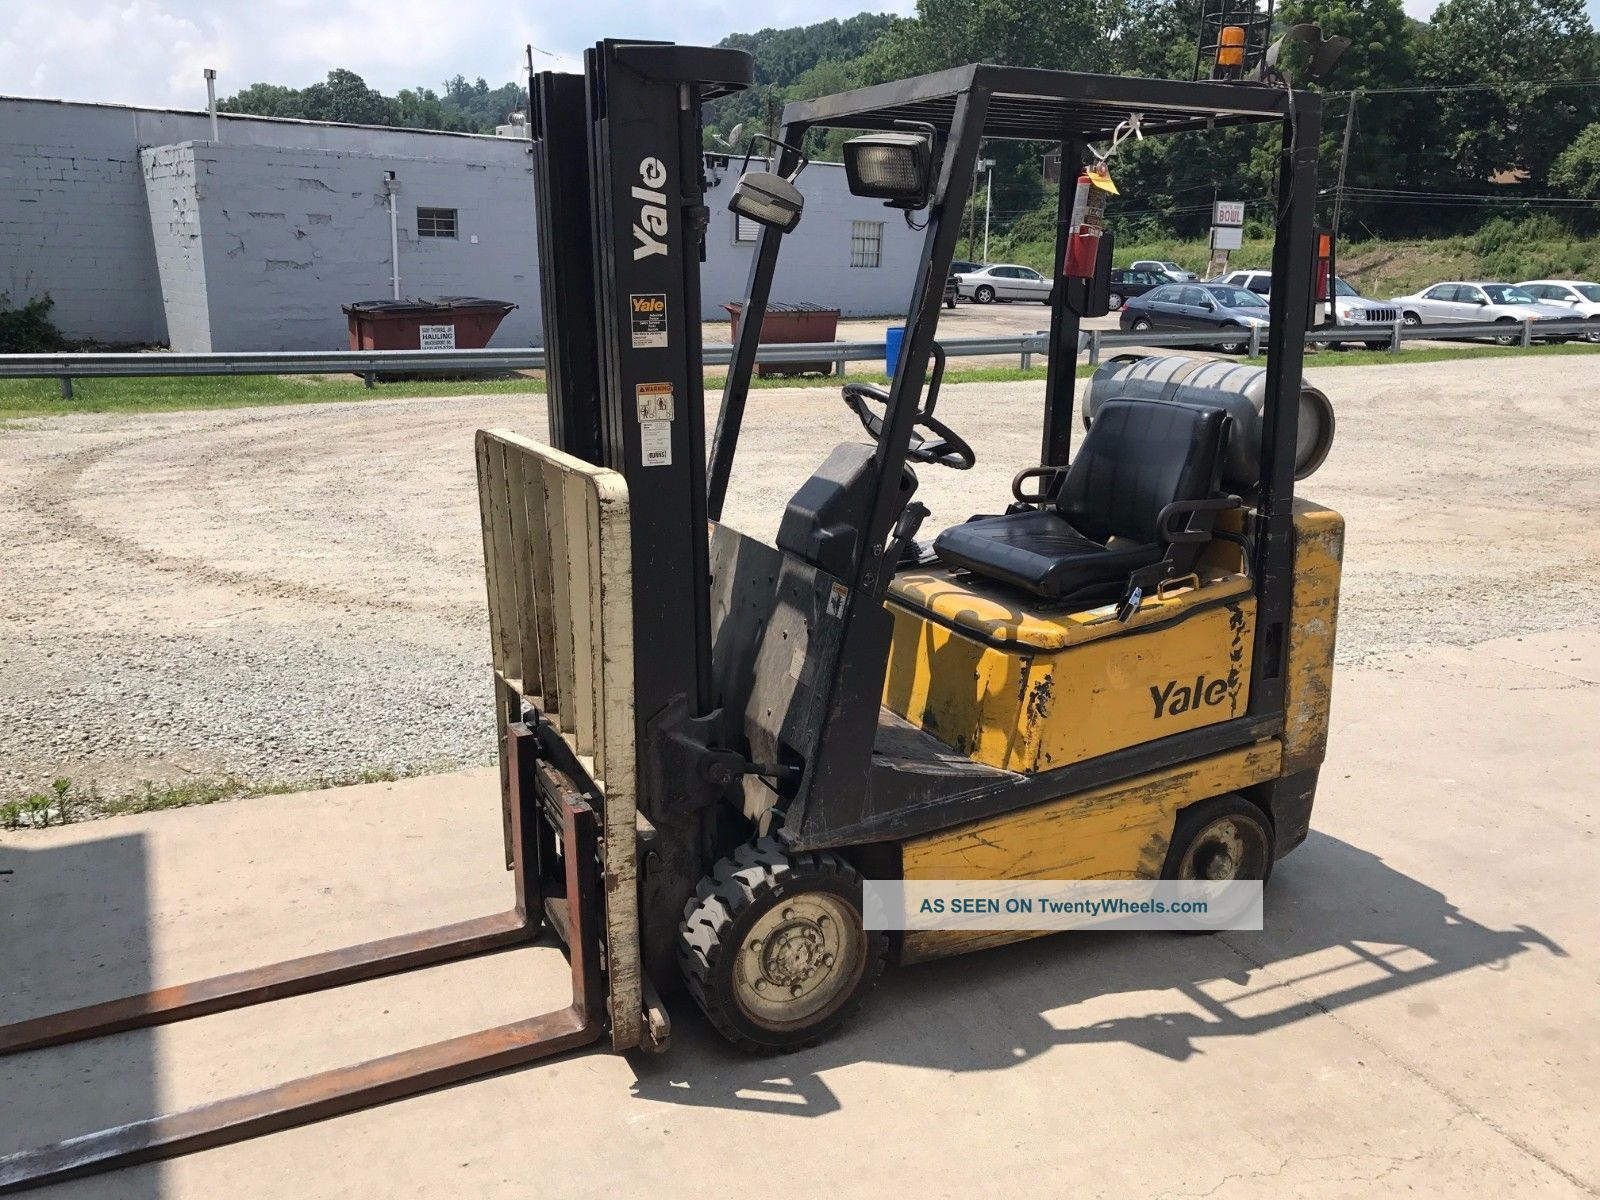 Yale Forklift Forklifts photo